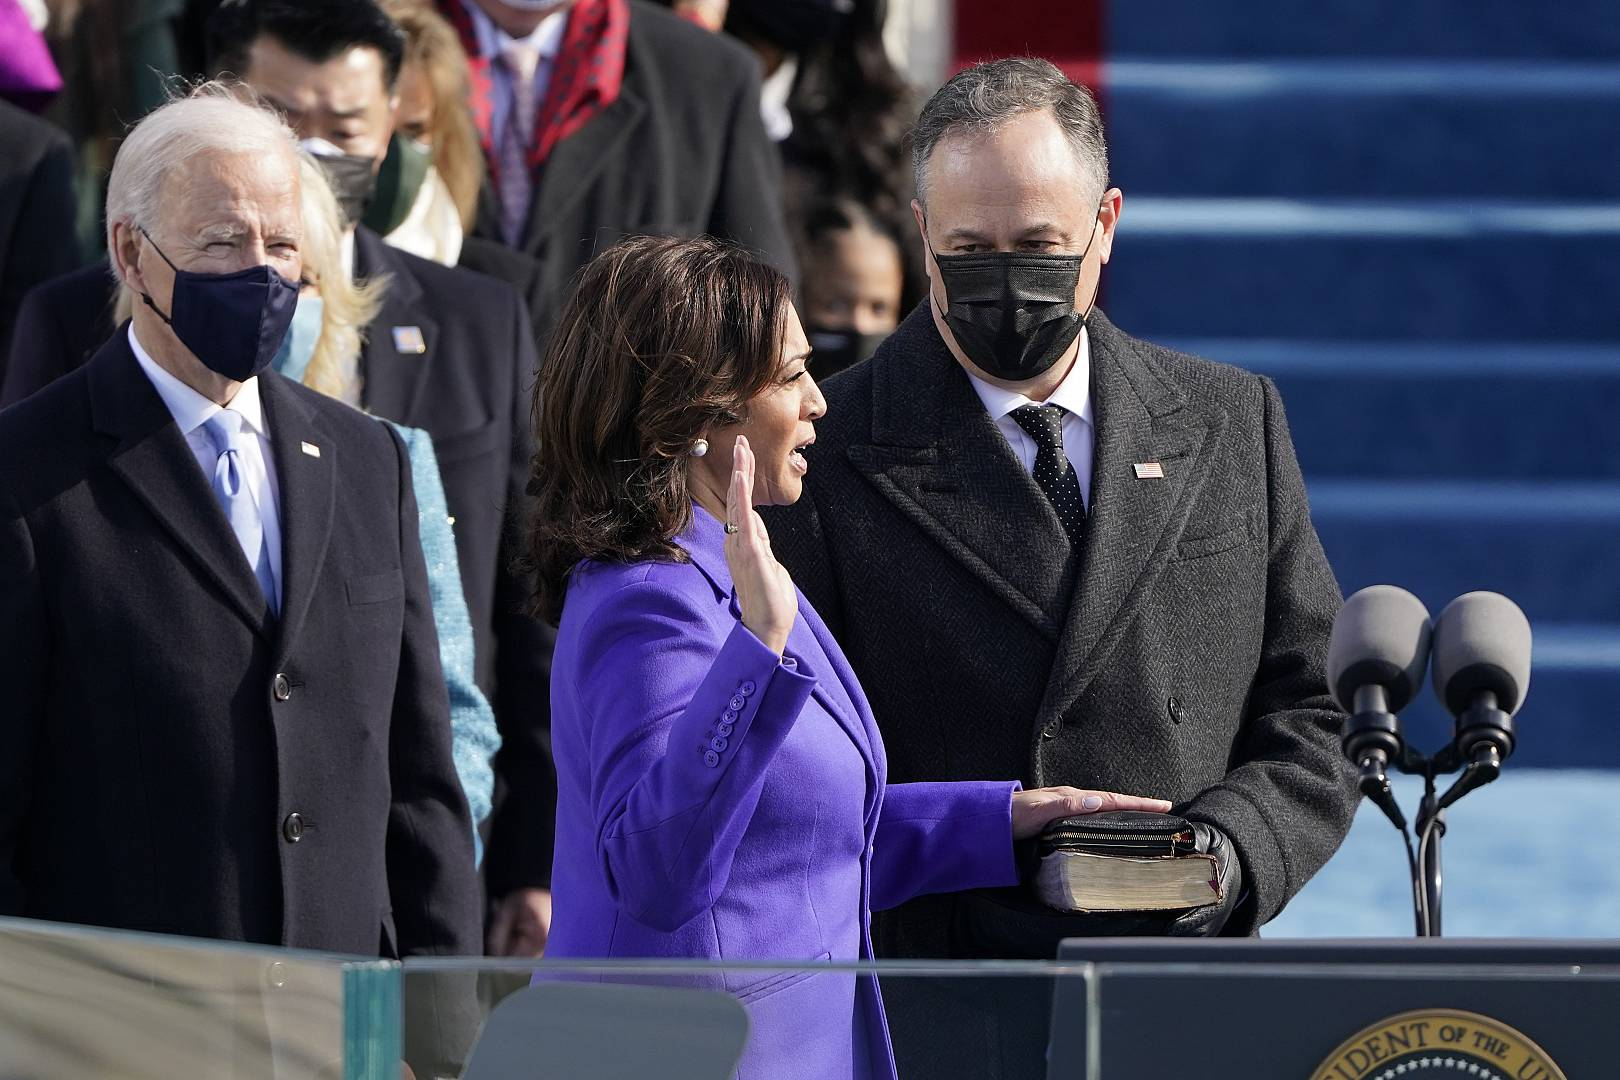 Kamala Harris is sworn in as vice president as her husband Doug Emhoff holds the Bible during the 59th Presidential Inauguration at the U.S. Capitol in Washington. January 20,